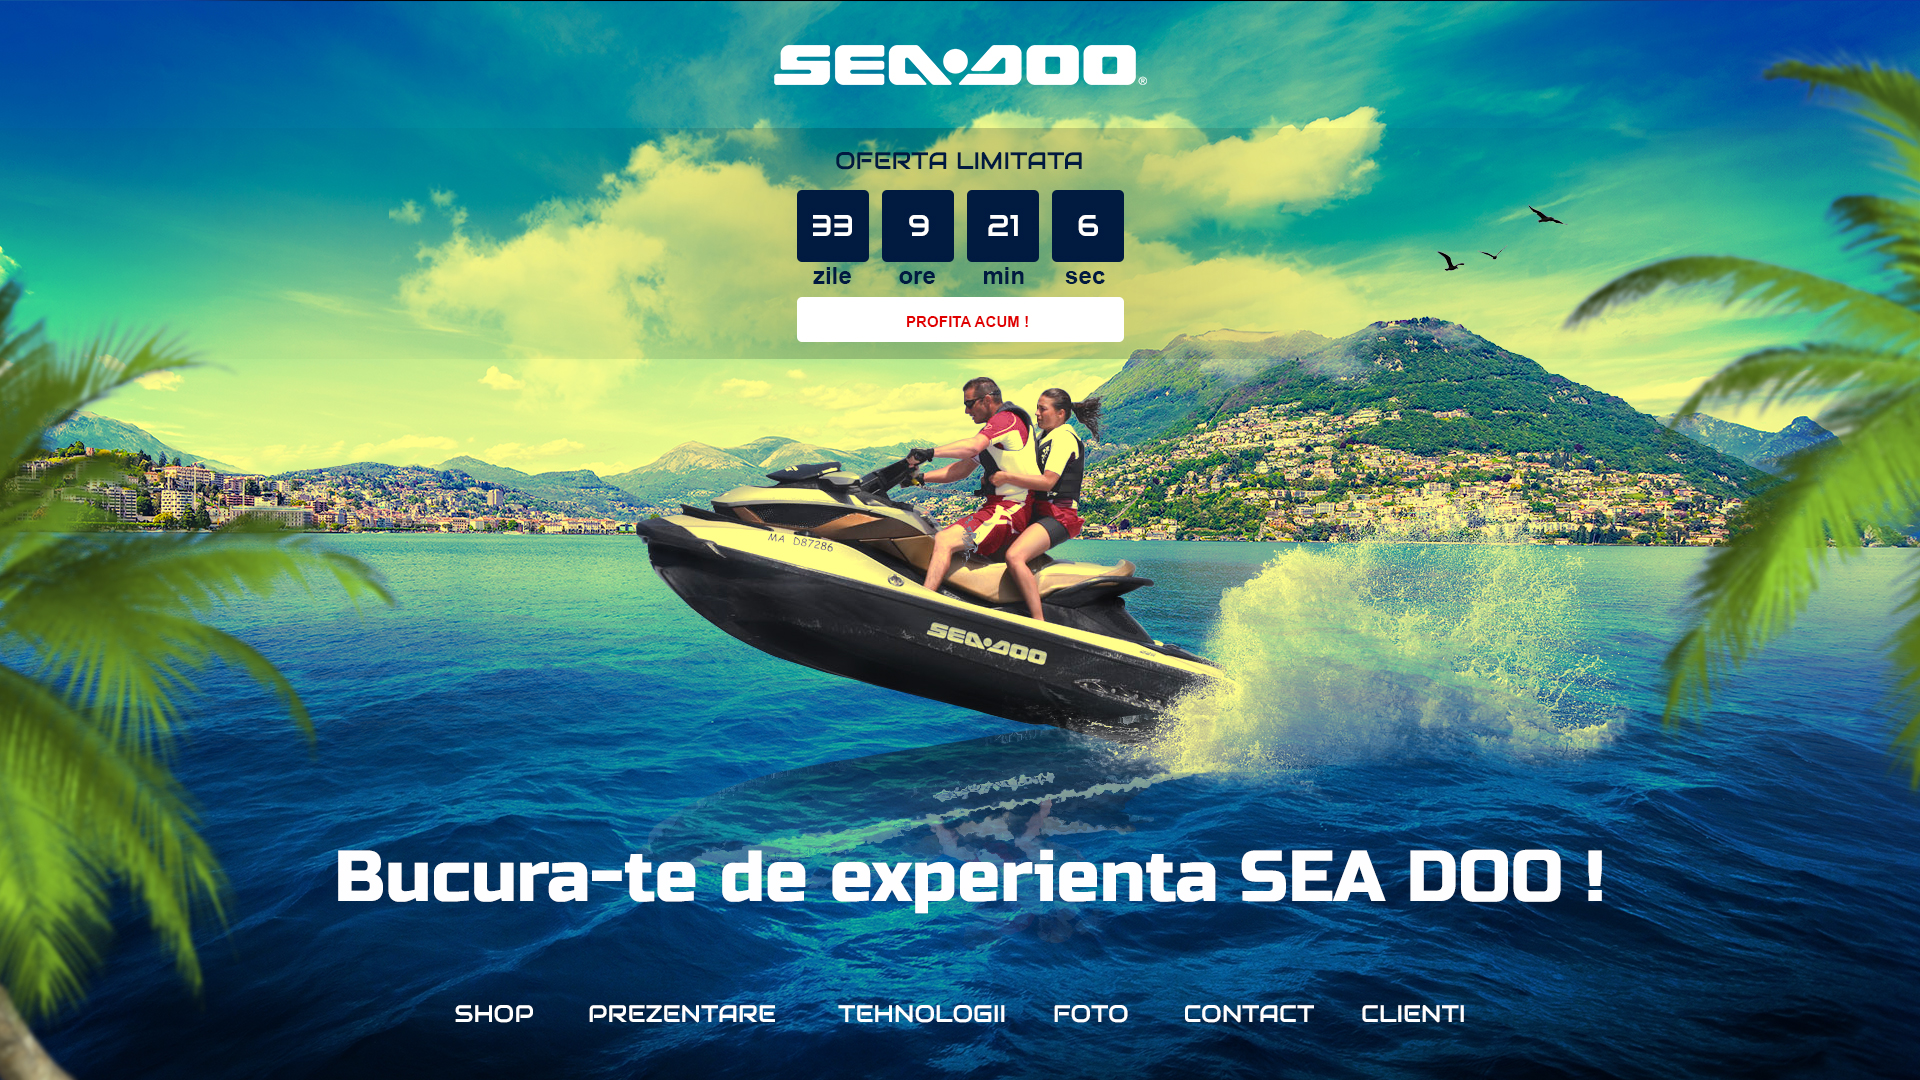 Sea Doo - Creative Ones